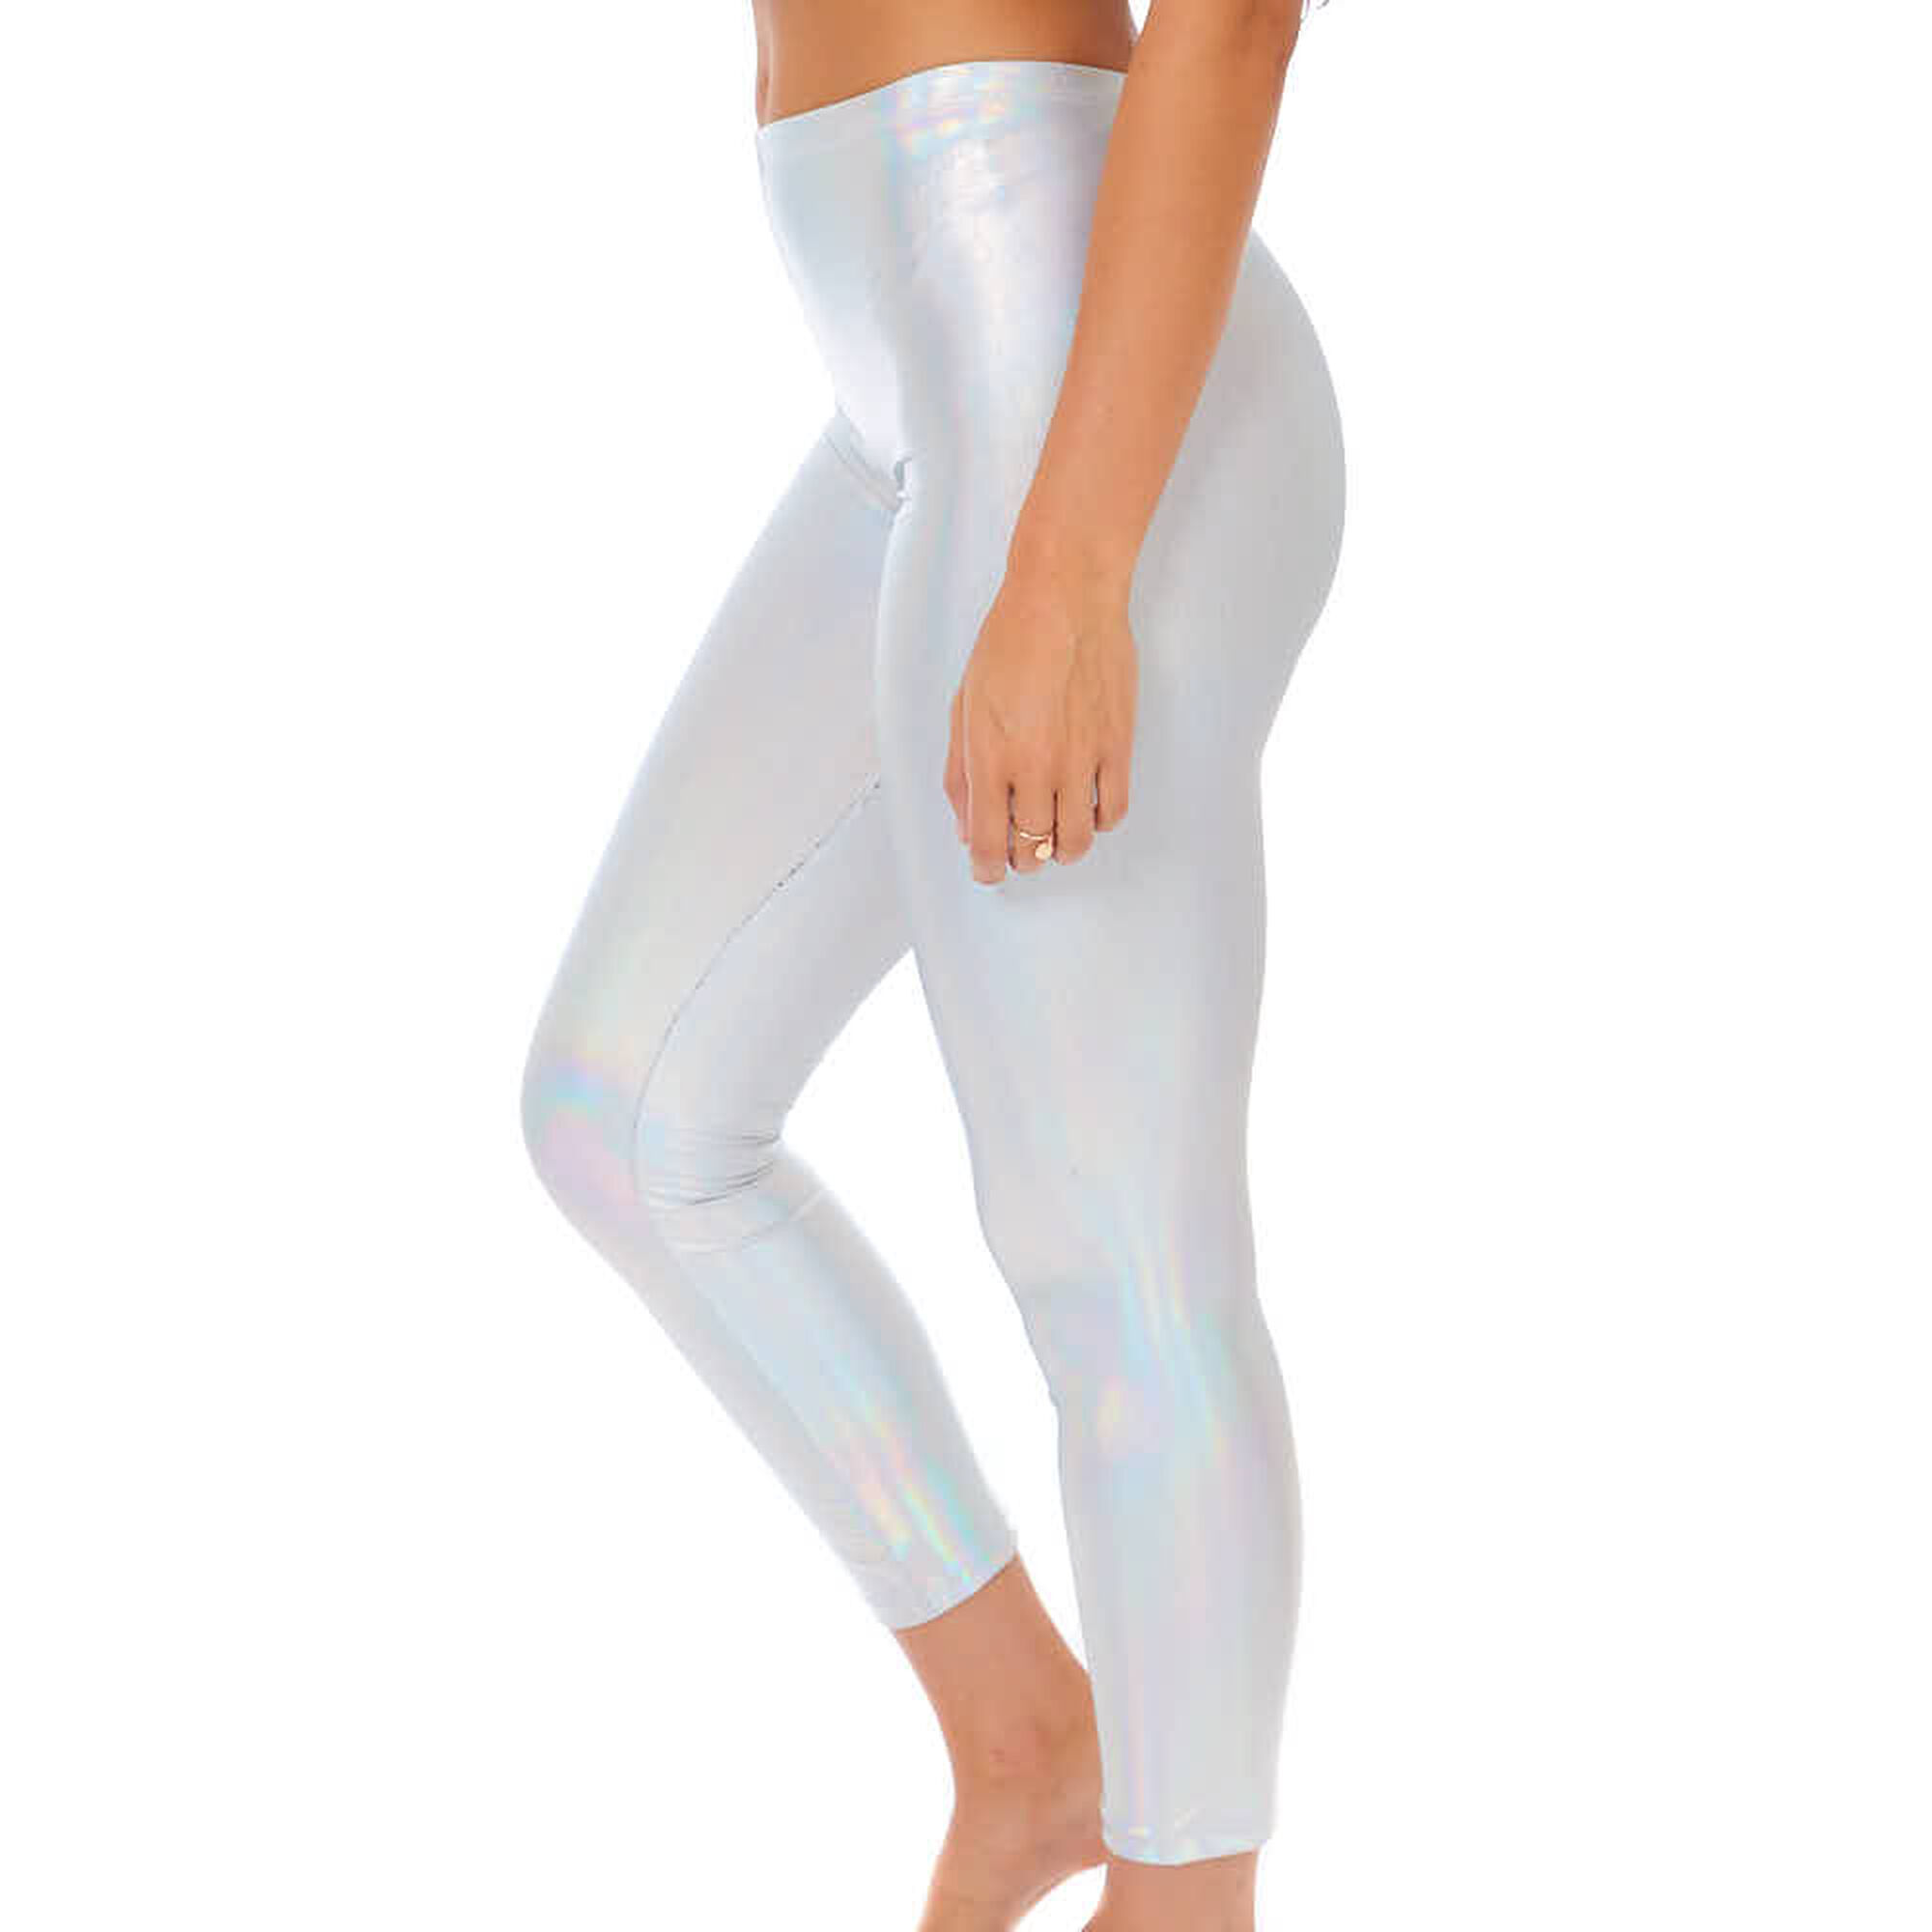 8a990a4fe0827a Holographic Leggings - Silver   Icing US